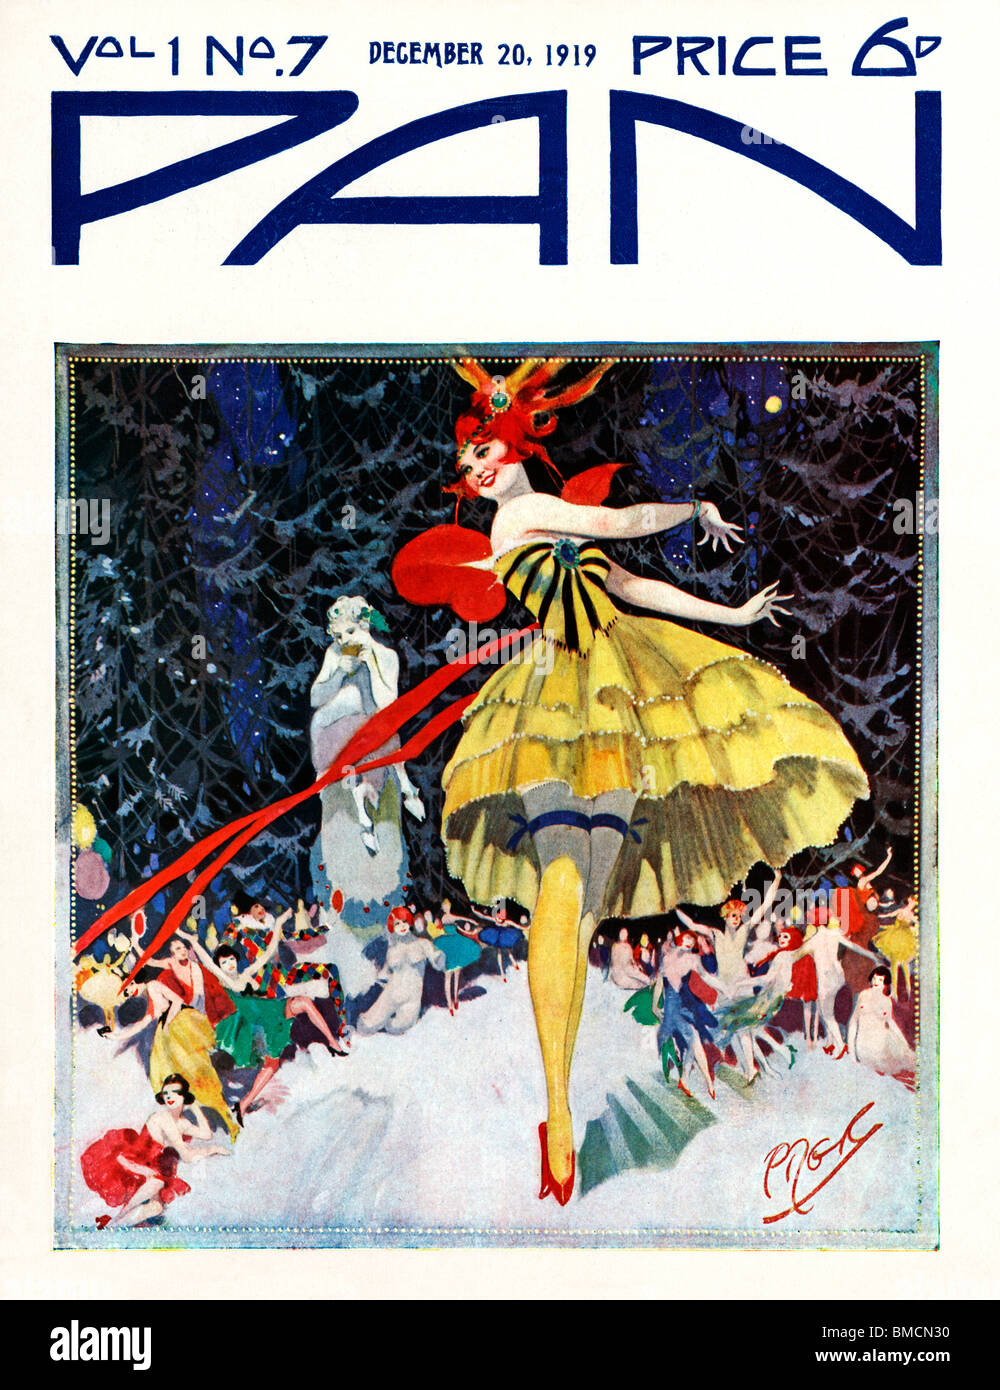 Pan, 20 December 1919, art deco cover of the English literary magazine, Christmas party time in the snow - Stock Image